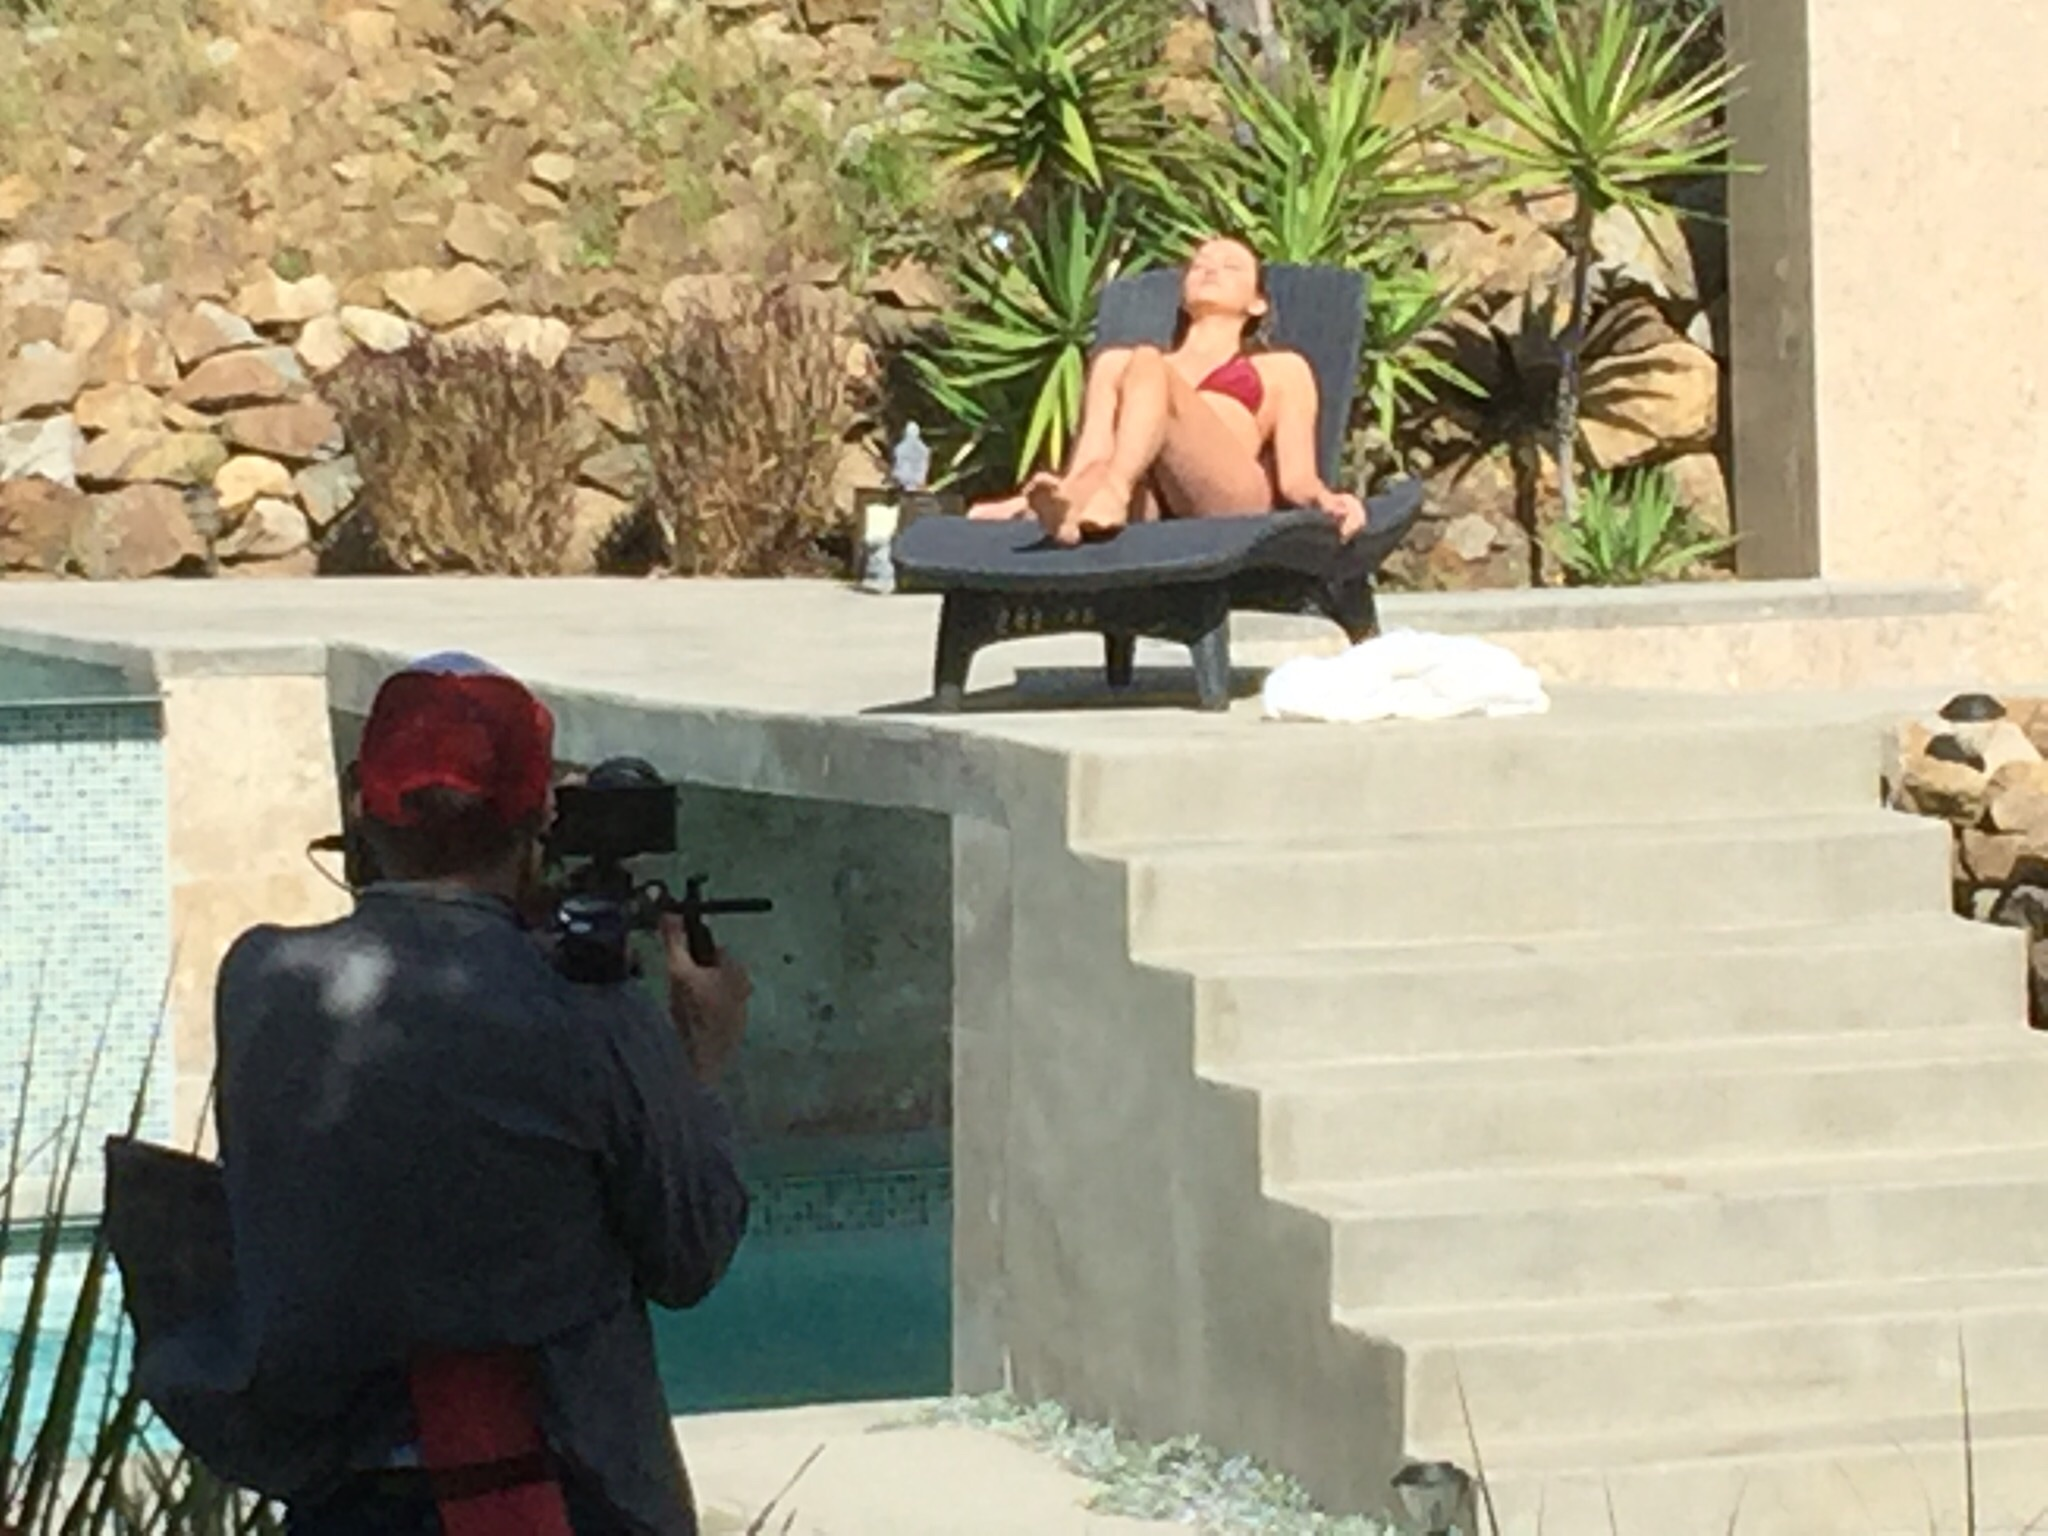 Filmmaker Carl Bessai, shoots a scene with        Ivy Matheson('Delia'), on location in Malibu filming 'The Lears.' April 2016.(photo:AMH)